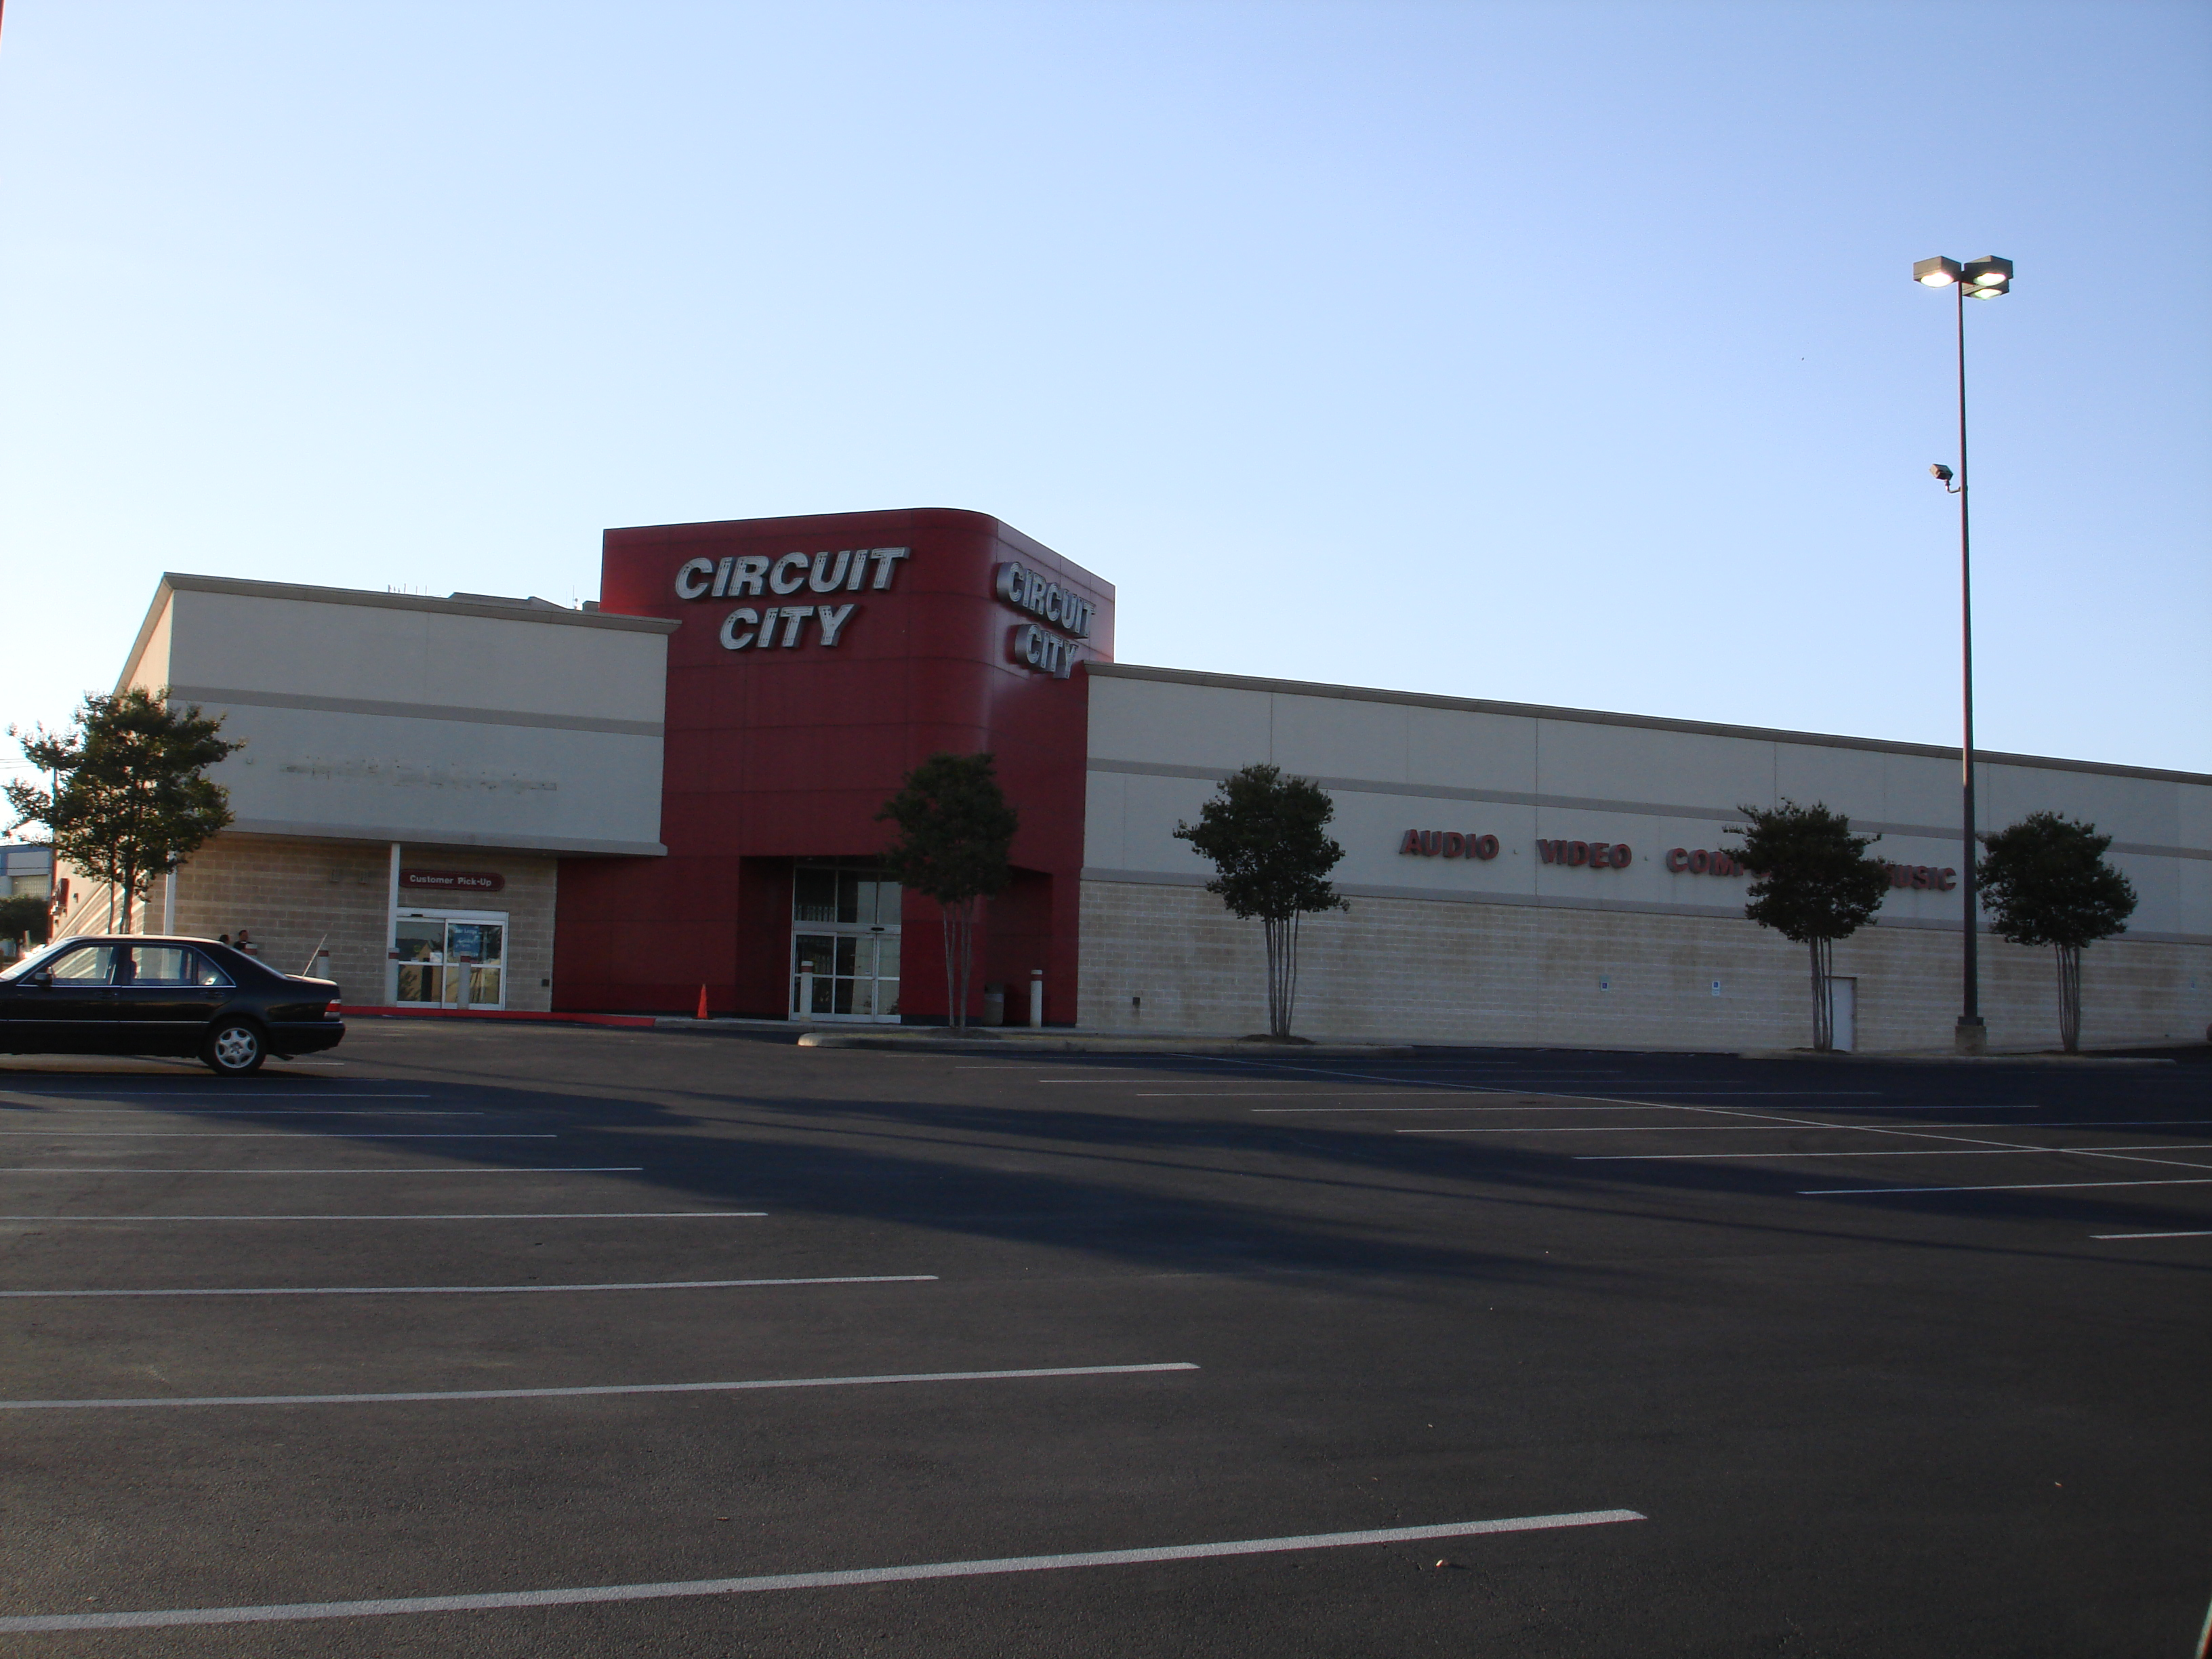 circuit city stores. Black Bedroom Furniture Sets. Home Design Ideas